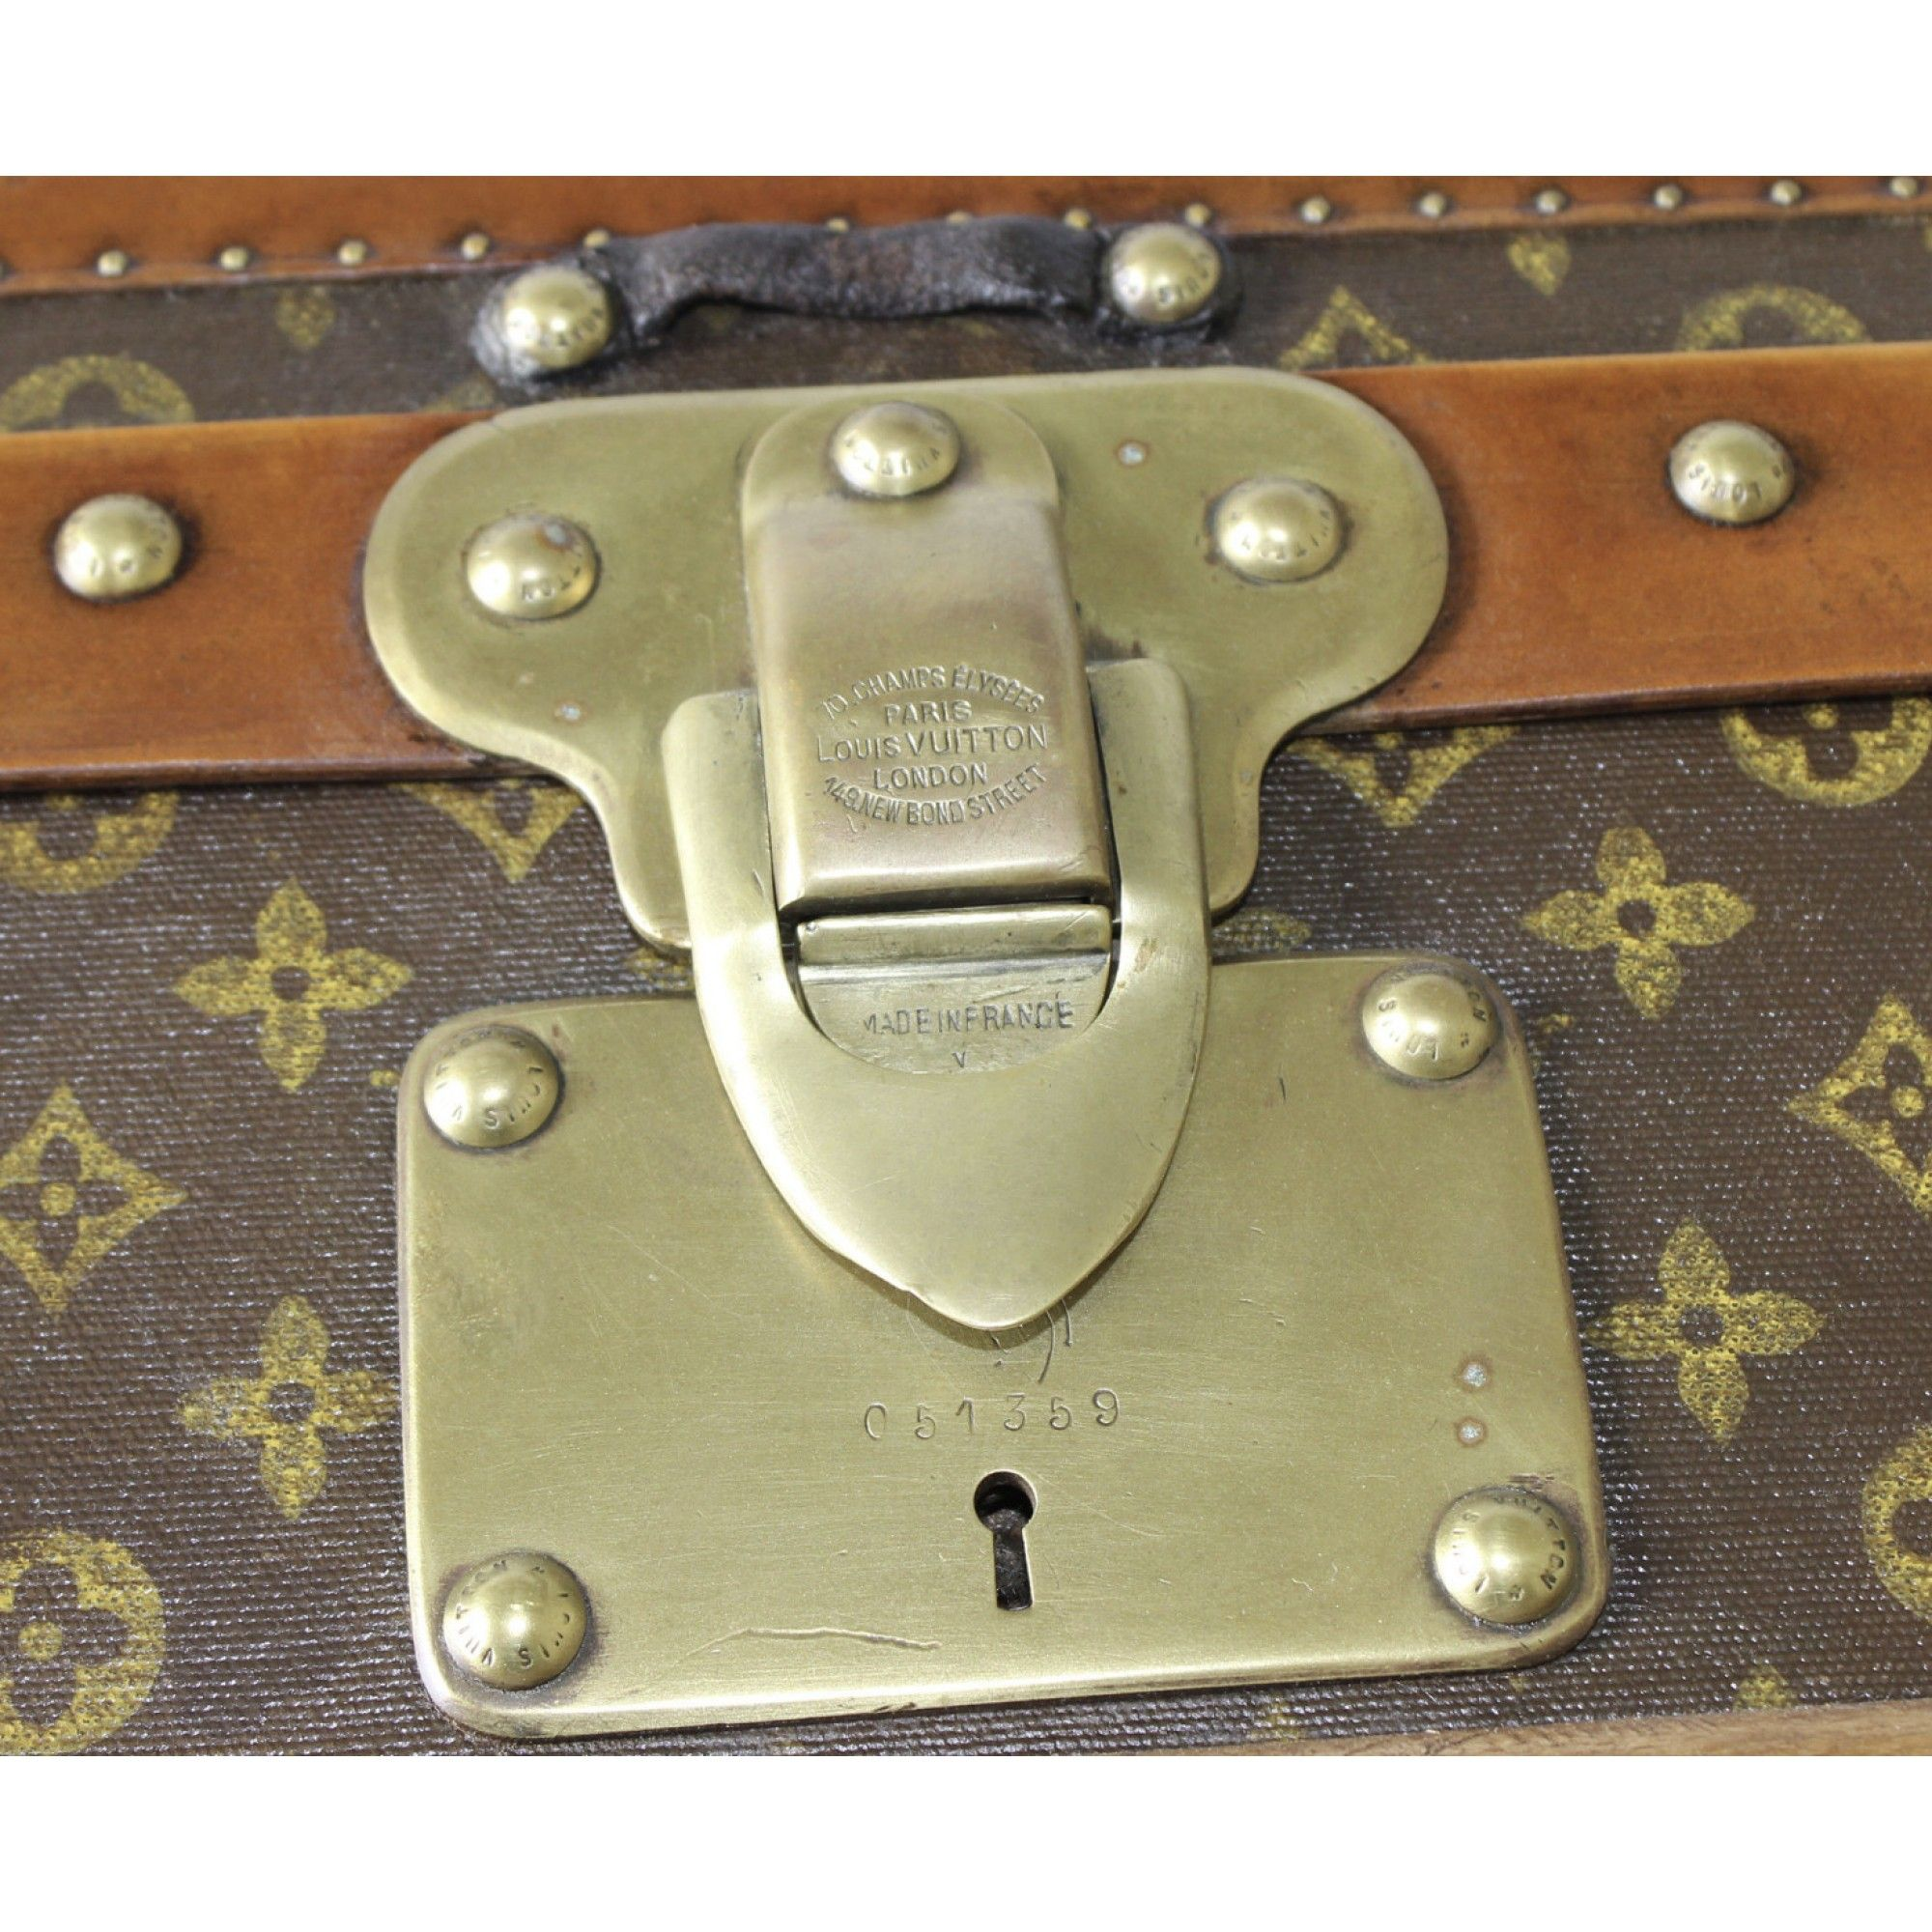 Louis Vuitton Shoe Trunk with AW initials - Louis Vuitton - Brands ...